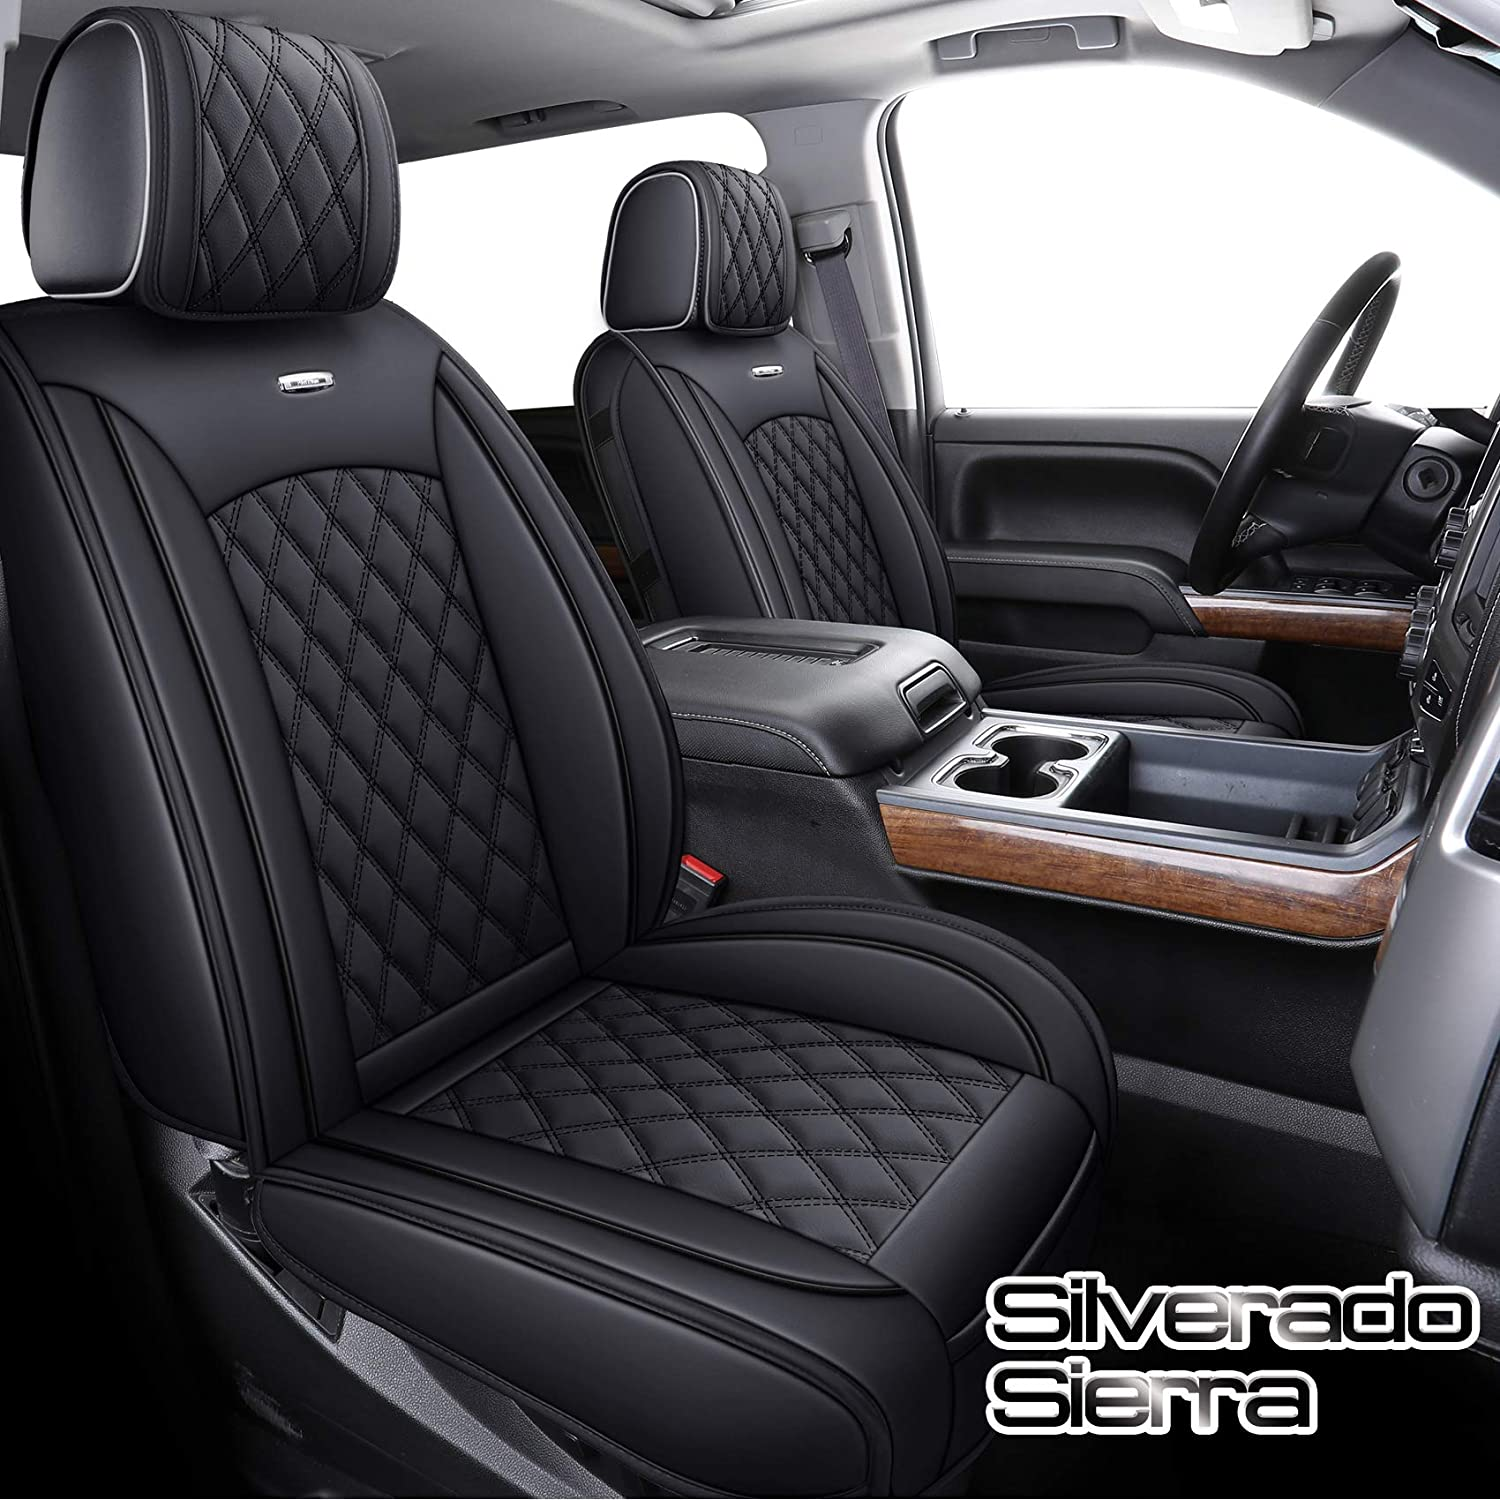 Aierxuan Seat Covers for Cars Full Set Chevy Chevrolet Silverado GMC Sierra Pickup 2007-2021 1500 2500HD 3500HD Crew Double Extended Cab Waterproof Leather Seat Protectors (Full Set, Black)